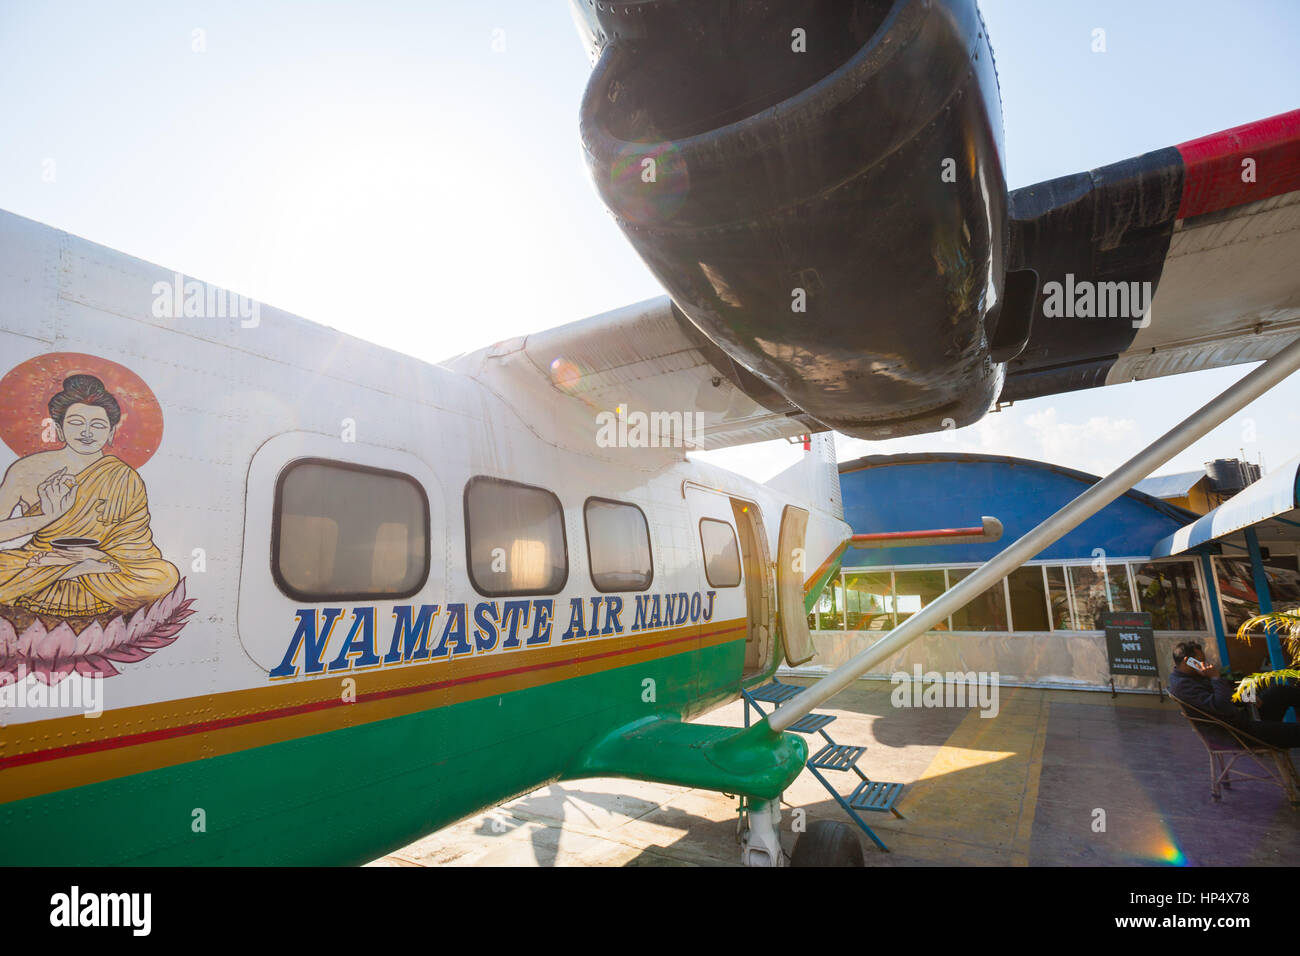 Guests sit down inside a remodeled, no longer in service airplane now used for restaurant seating at the Namaste - Stock Image